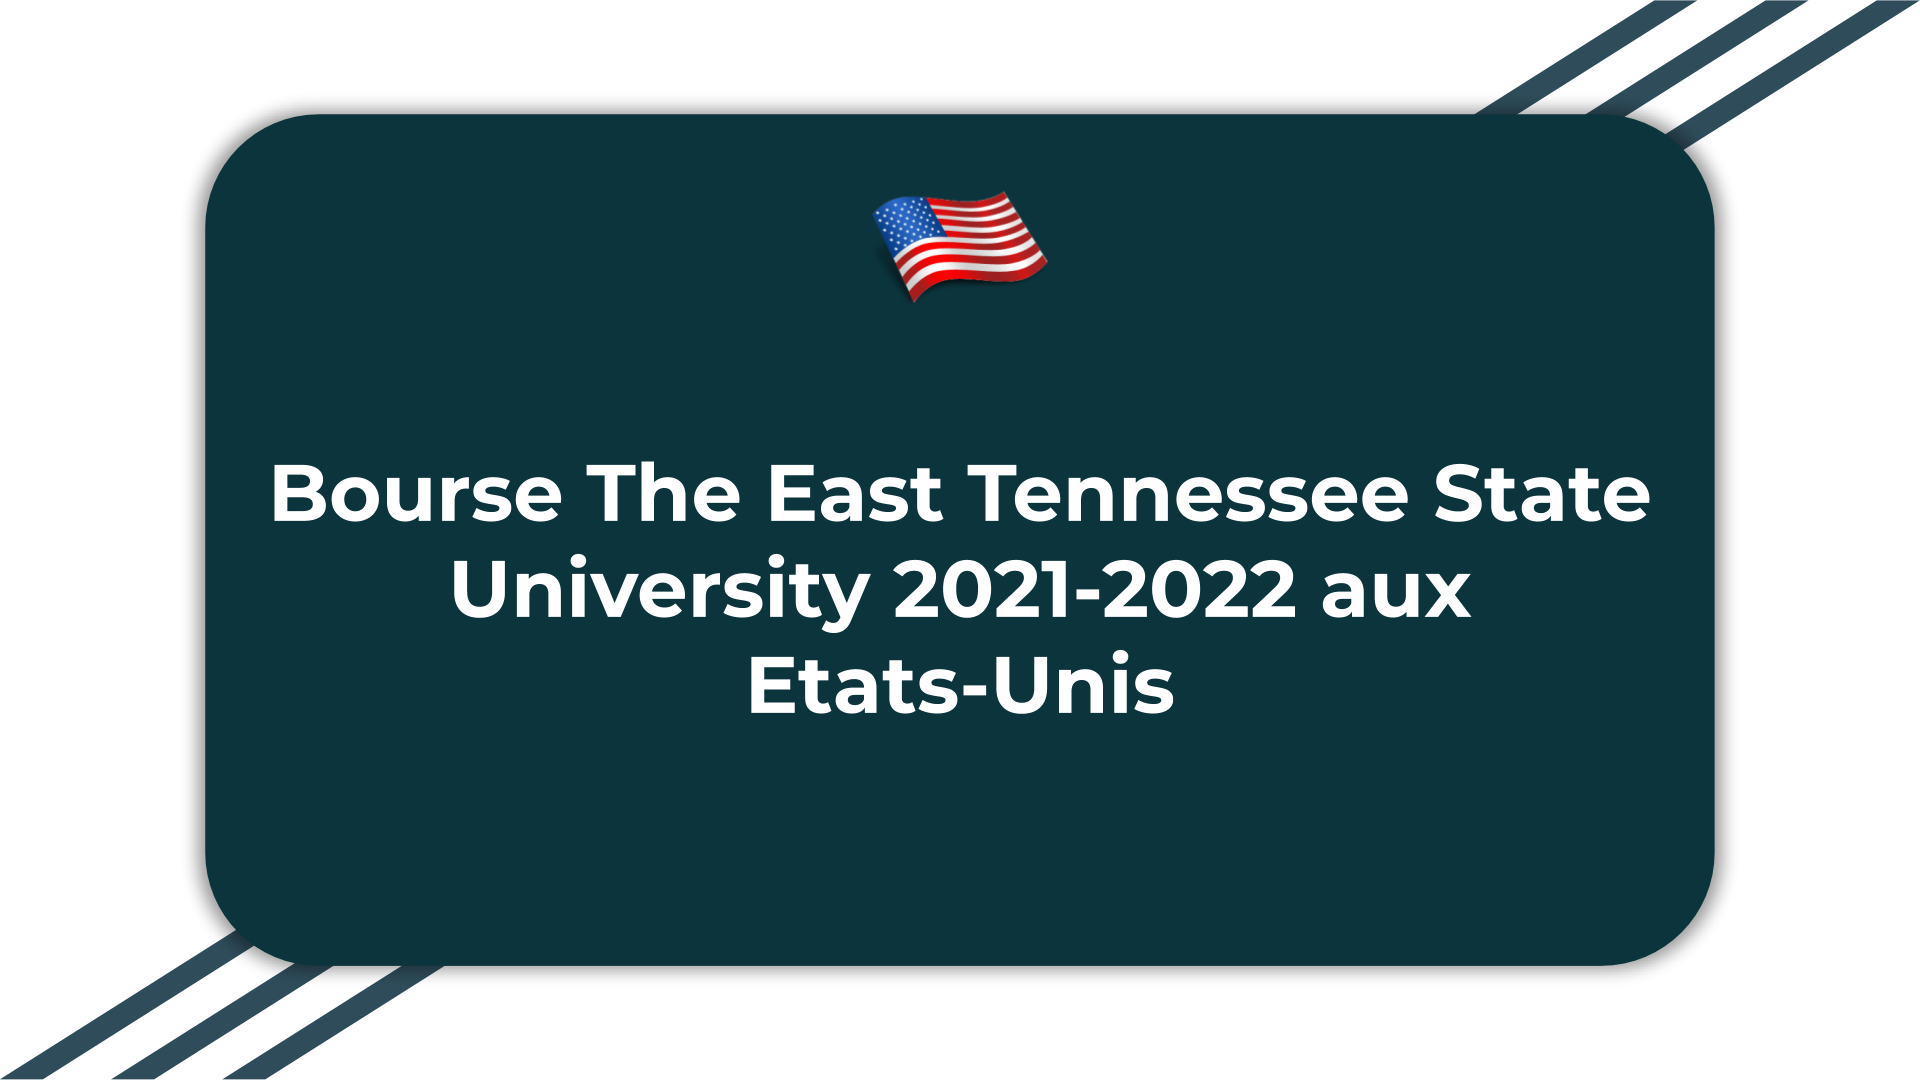 Bourse The East Tennessee State University